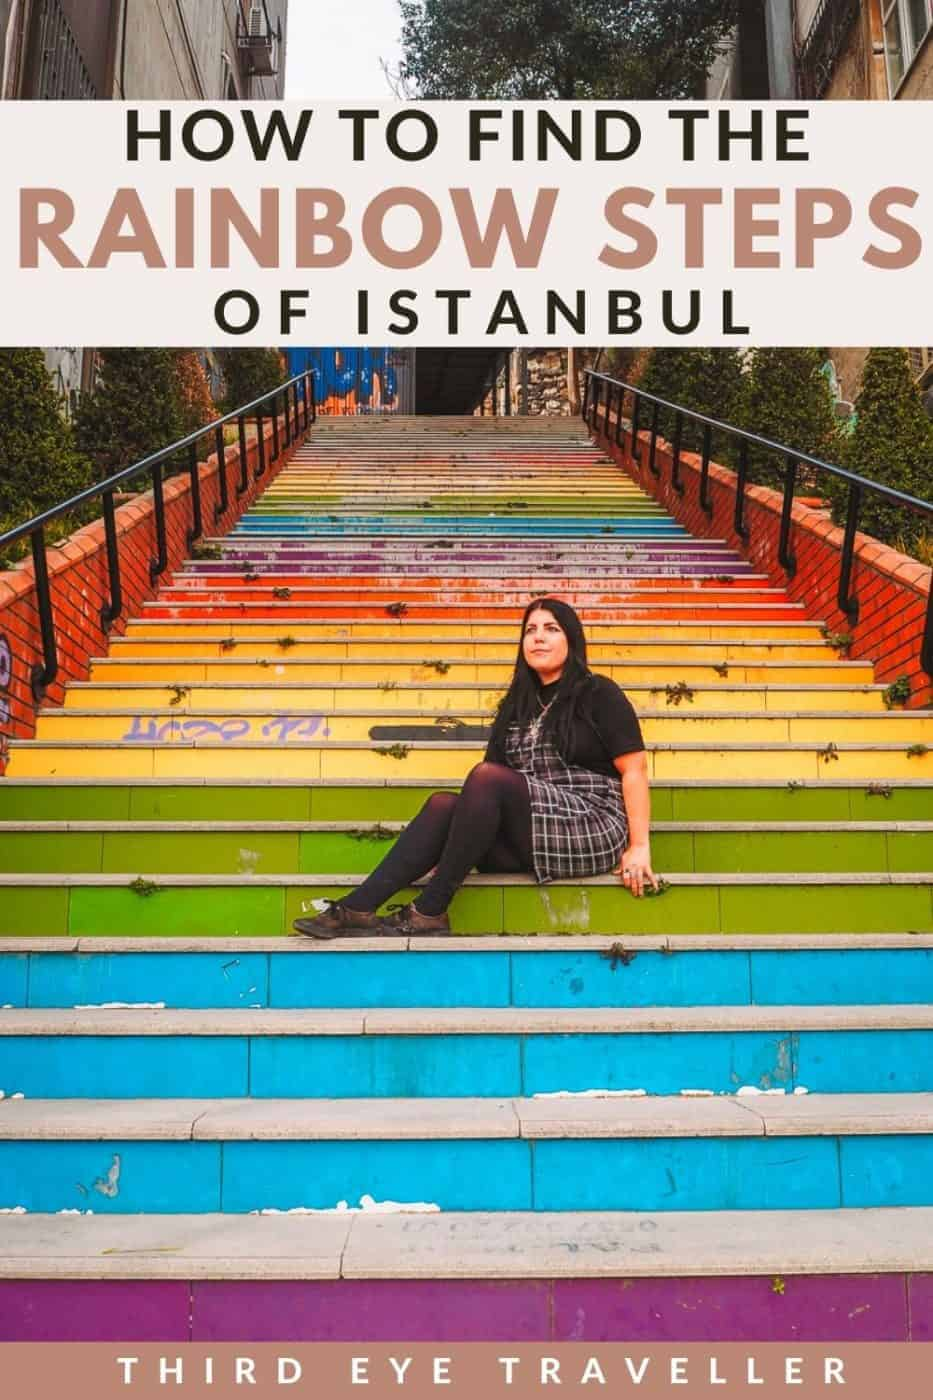 how to find the rainbow steps in Istanbul